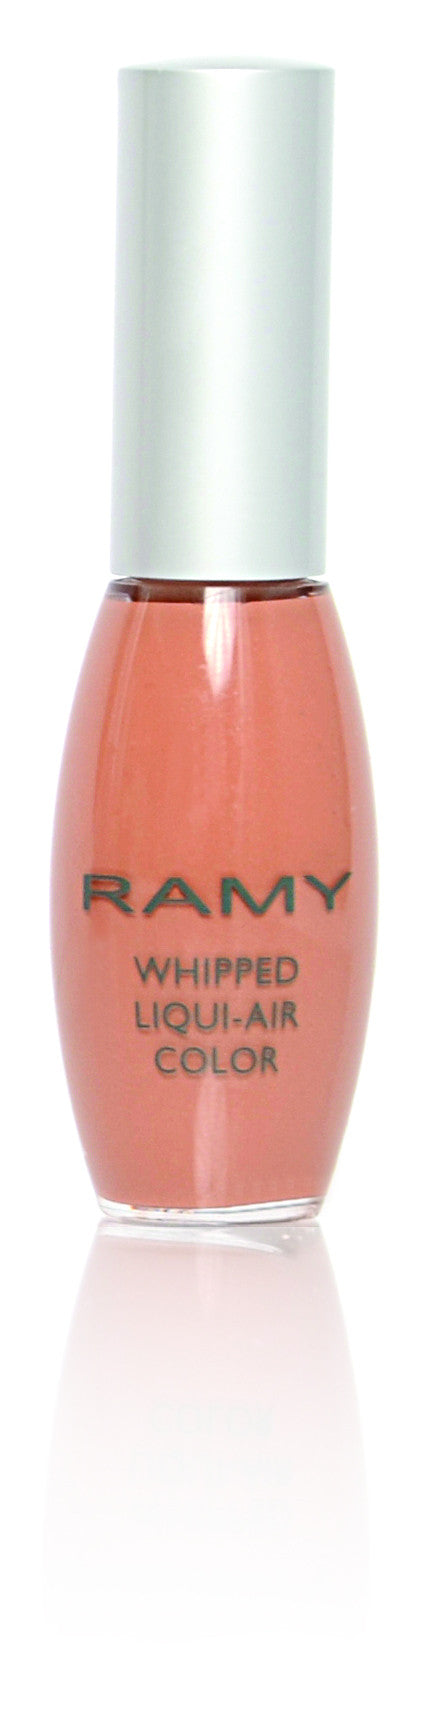 Ramy Whipped Liqui-Air Color for Eyes and Cheeks